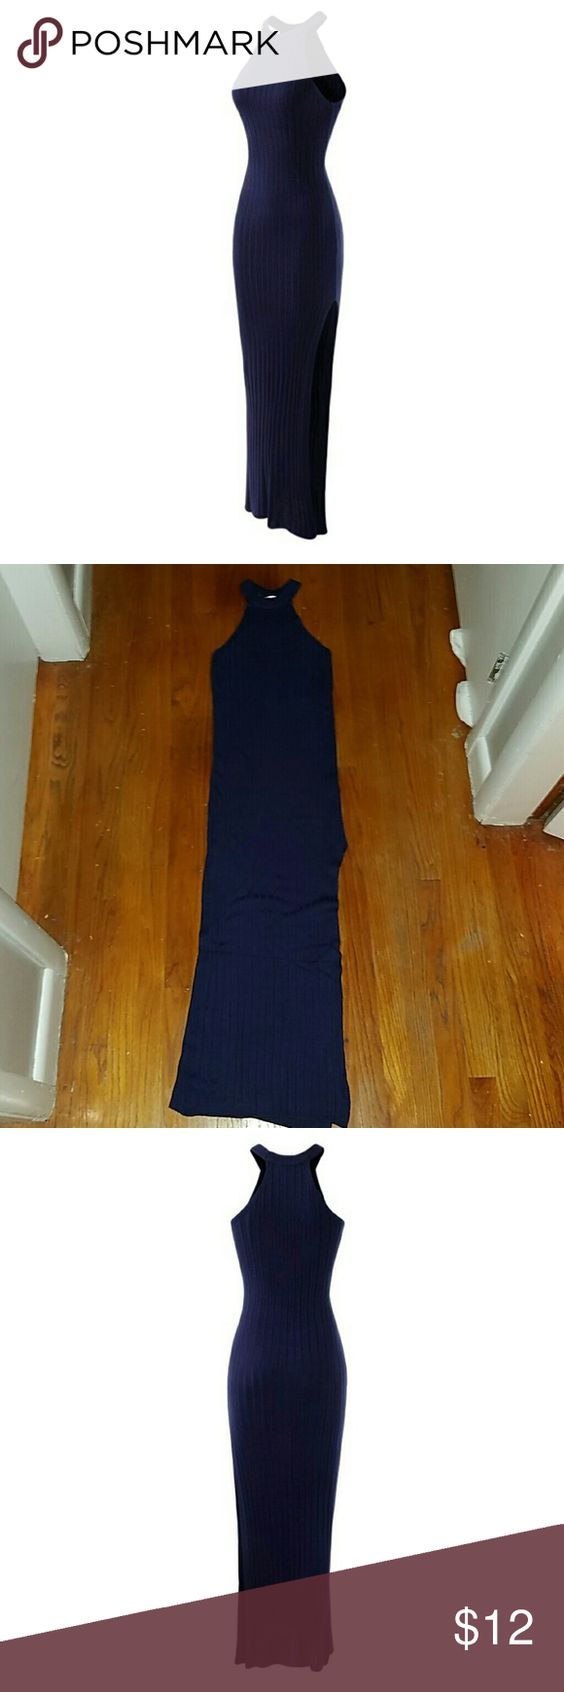 Women' Halter Dress Navy Blue Womens Halter Dress. Originally purchased on Amazon in April 2016. Like new, perfect condition. Worn Once. Navy blue. Dresses